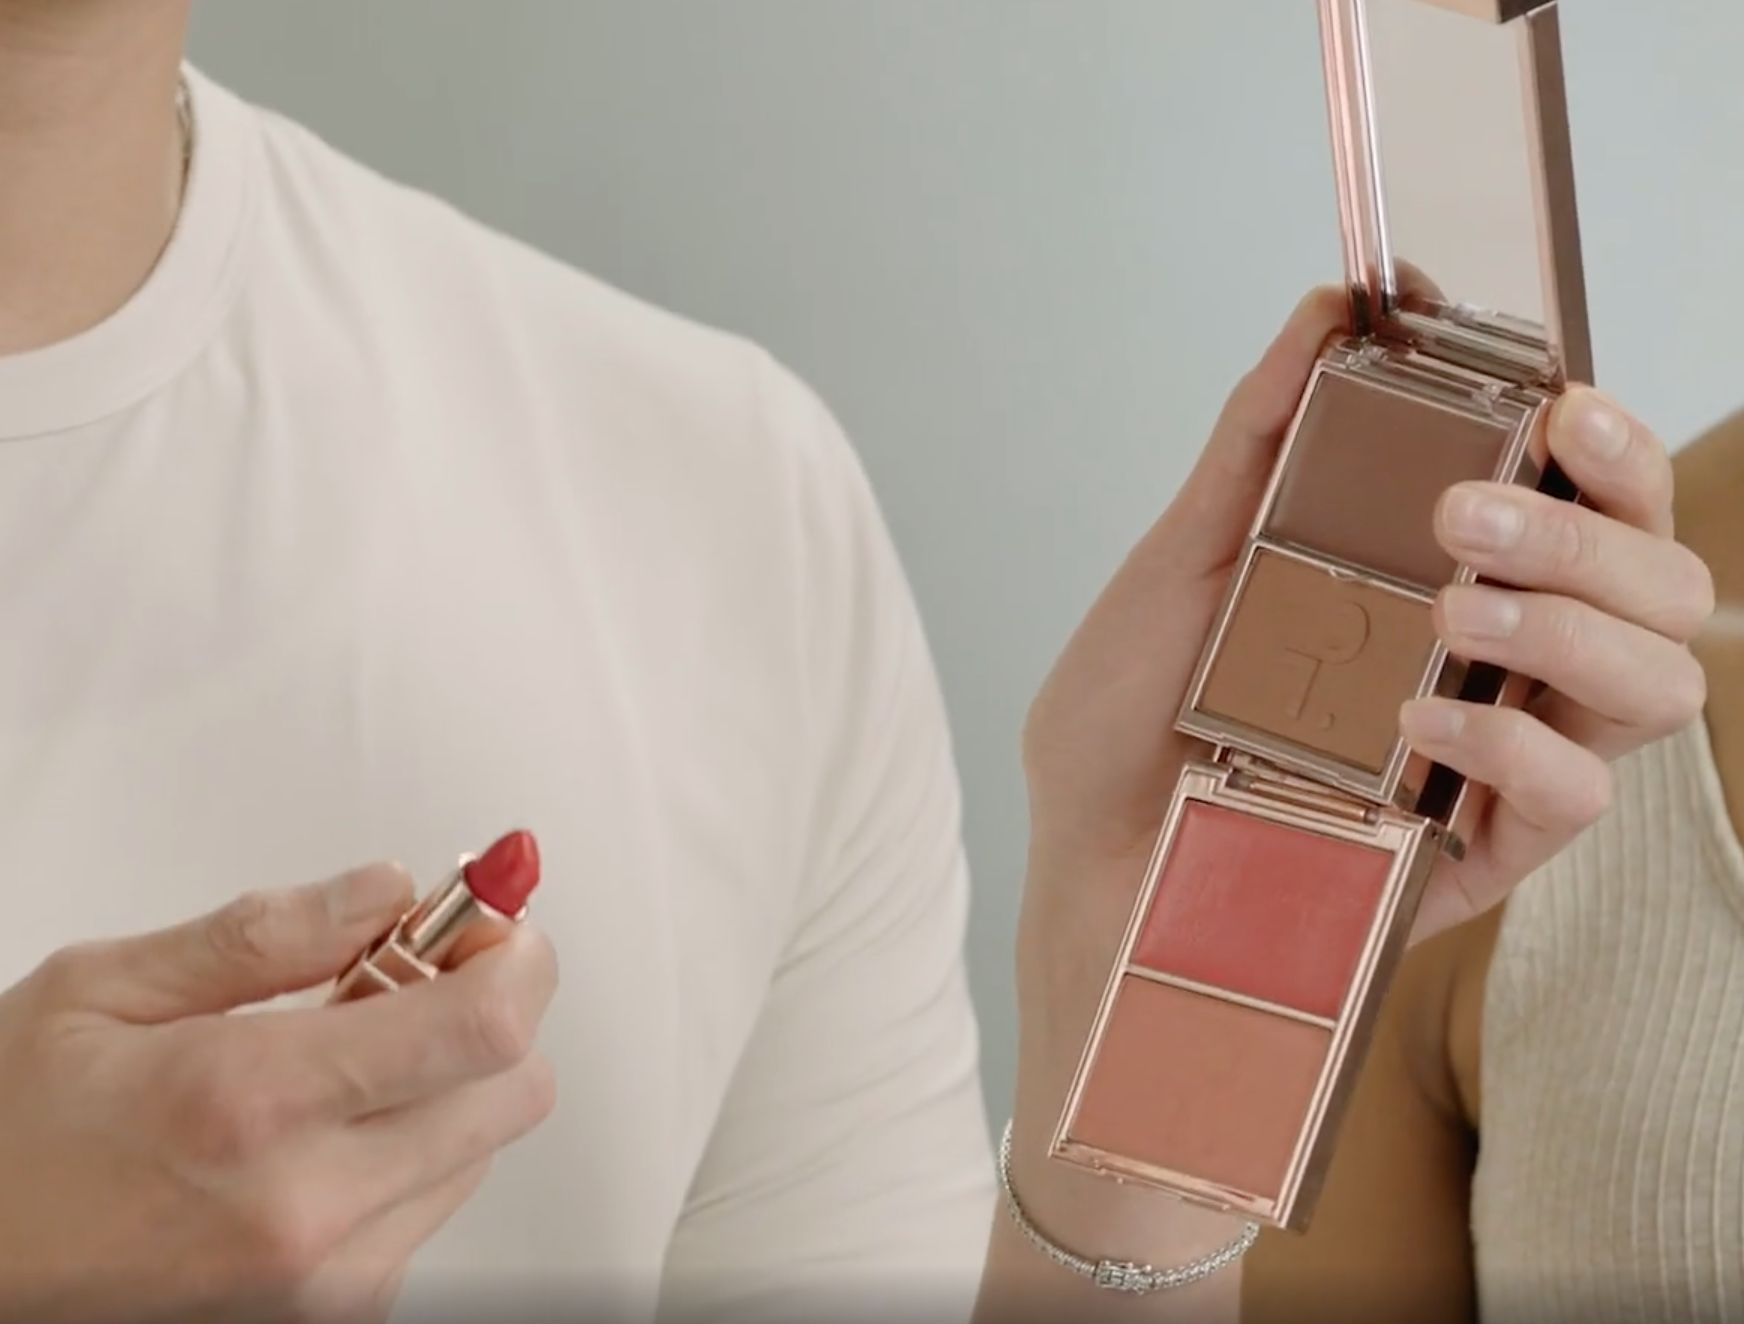 How to match your lipstick to your blush